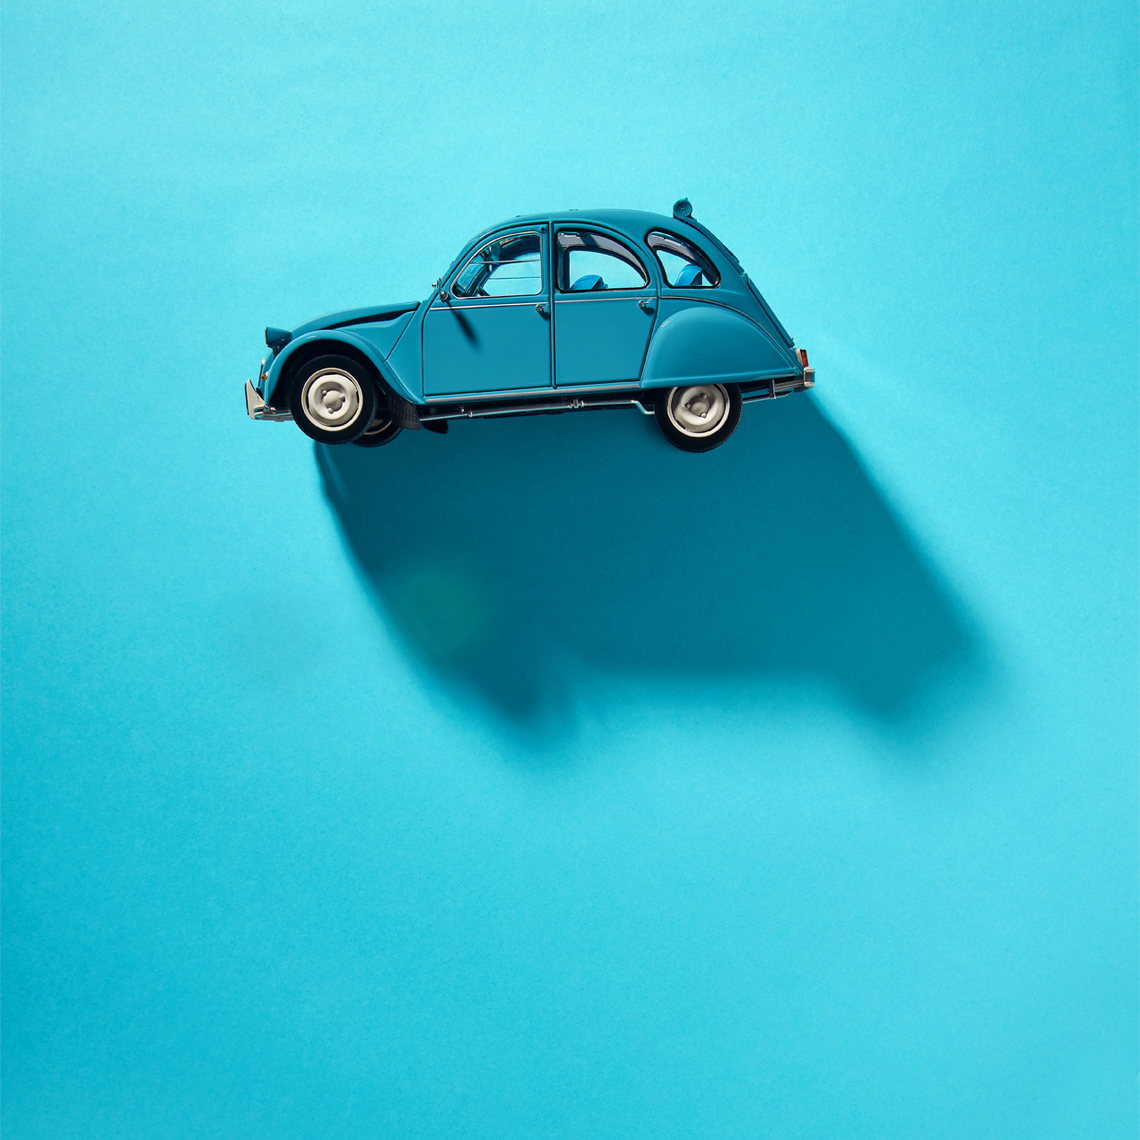 creative still life photography:  citroen 2v car